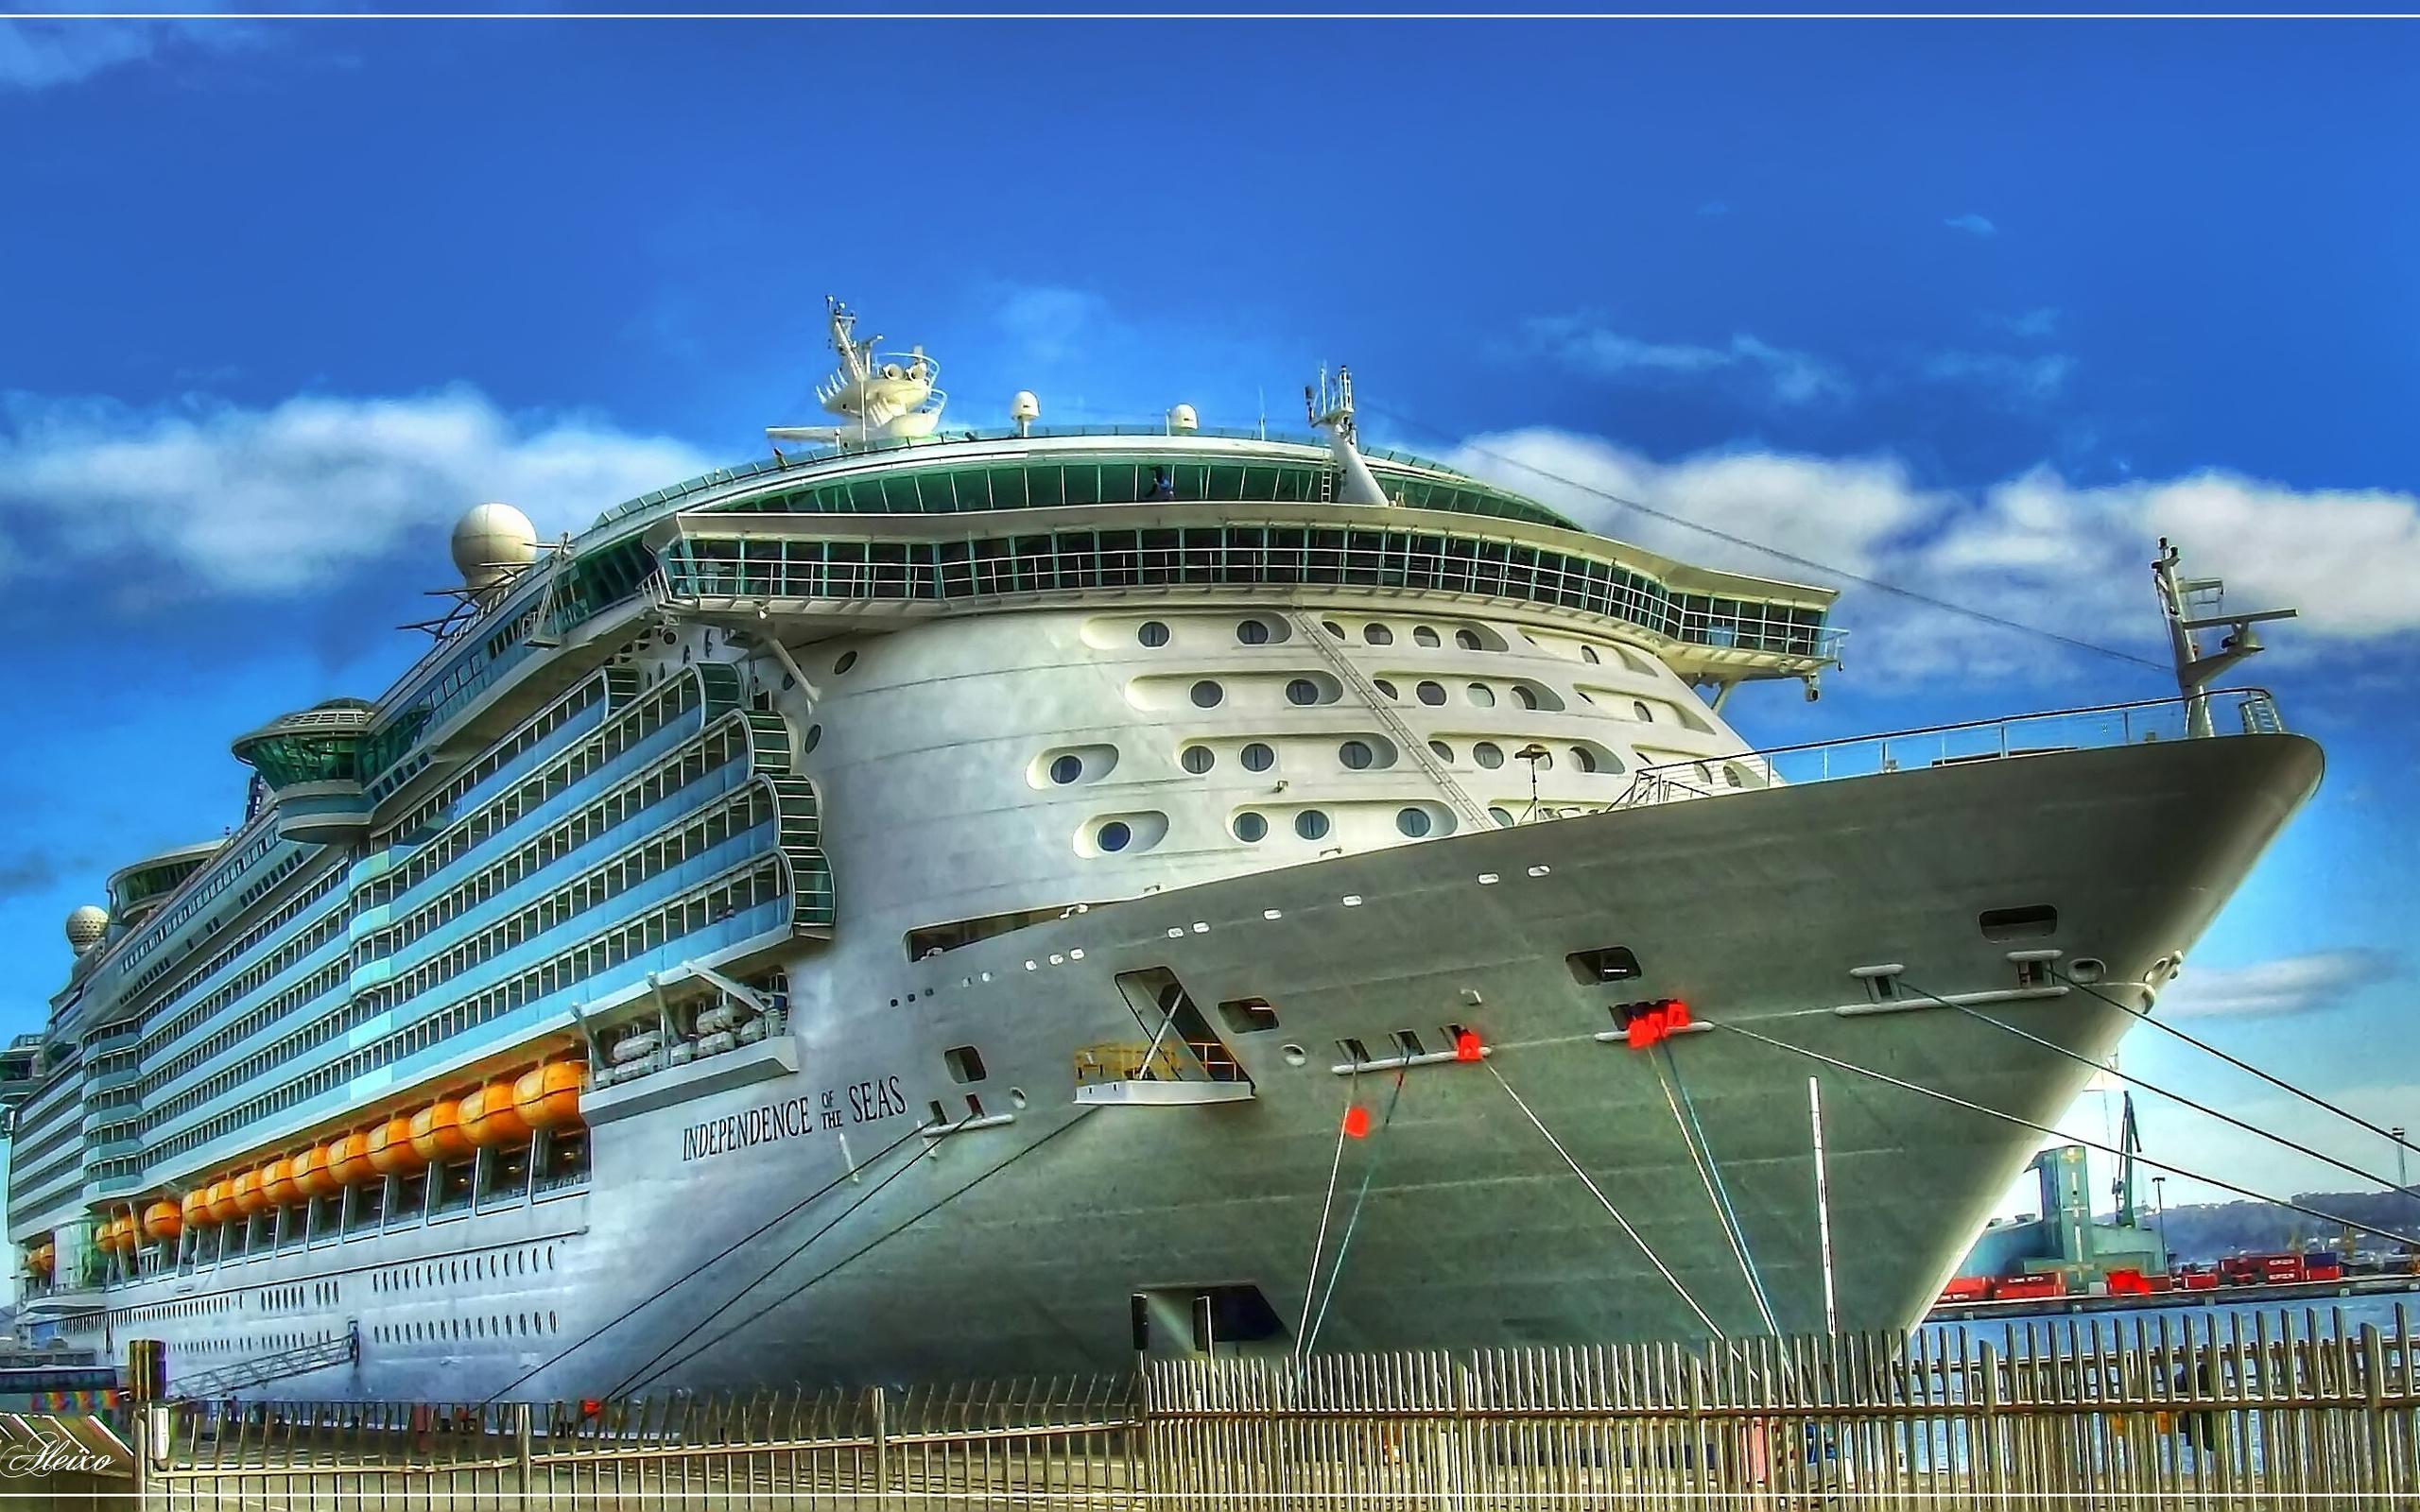 Cruise ships best wallpapers   My Wallpapers Hub 2560x1600